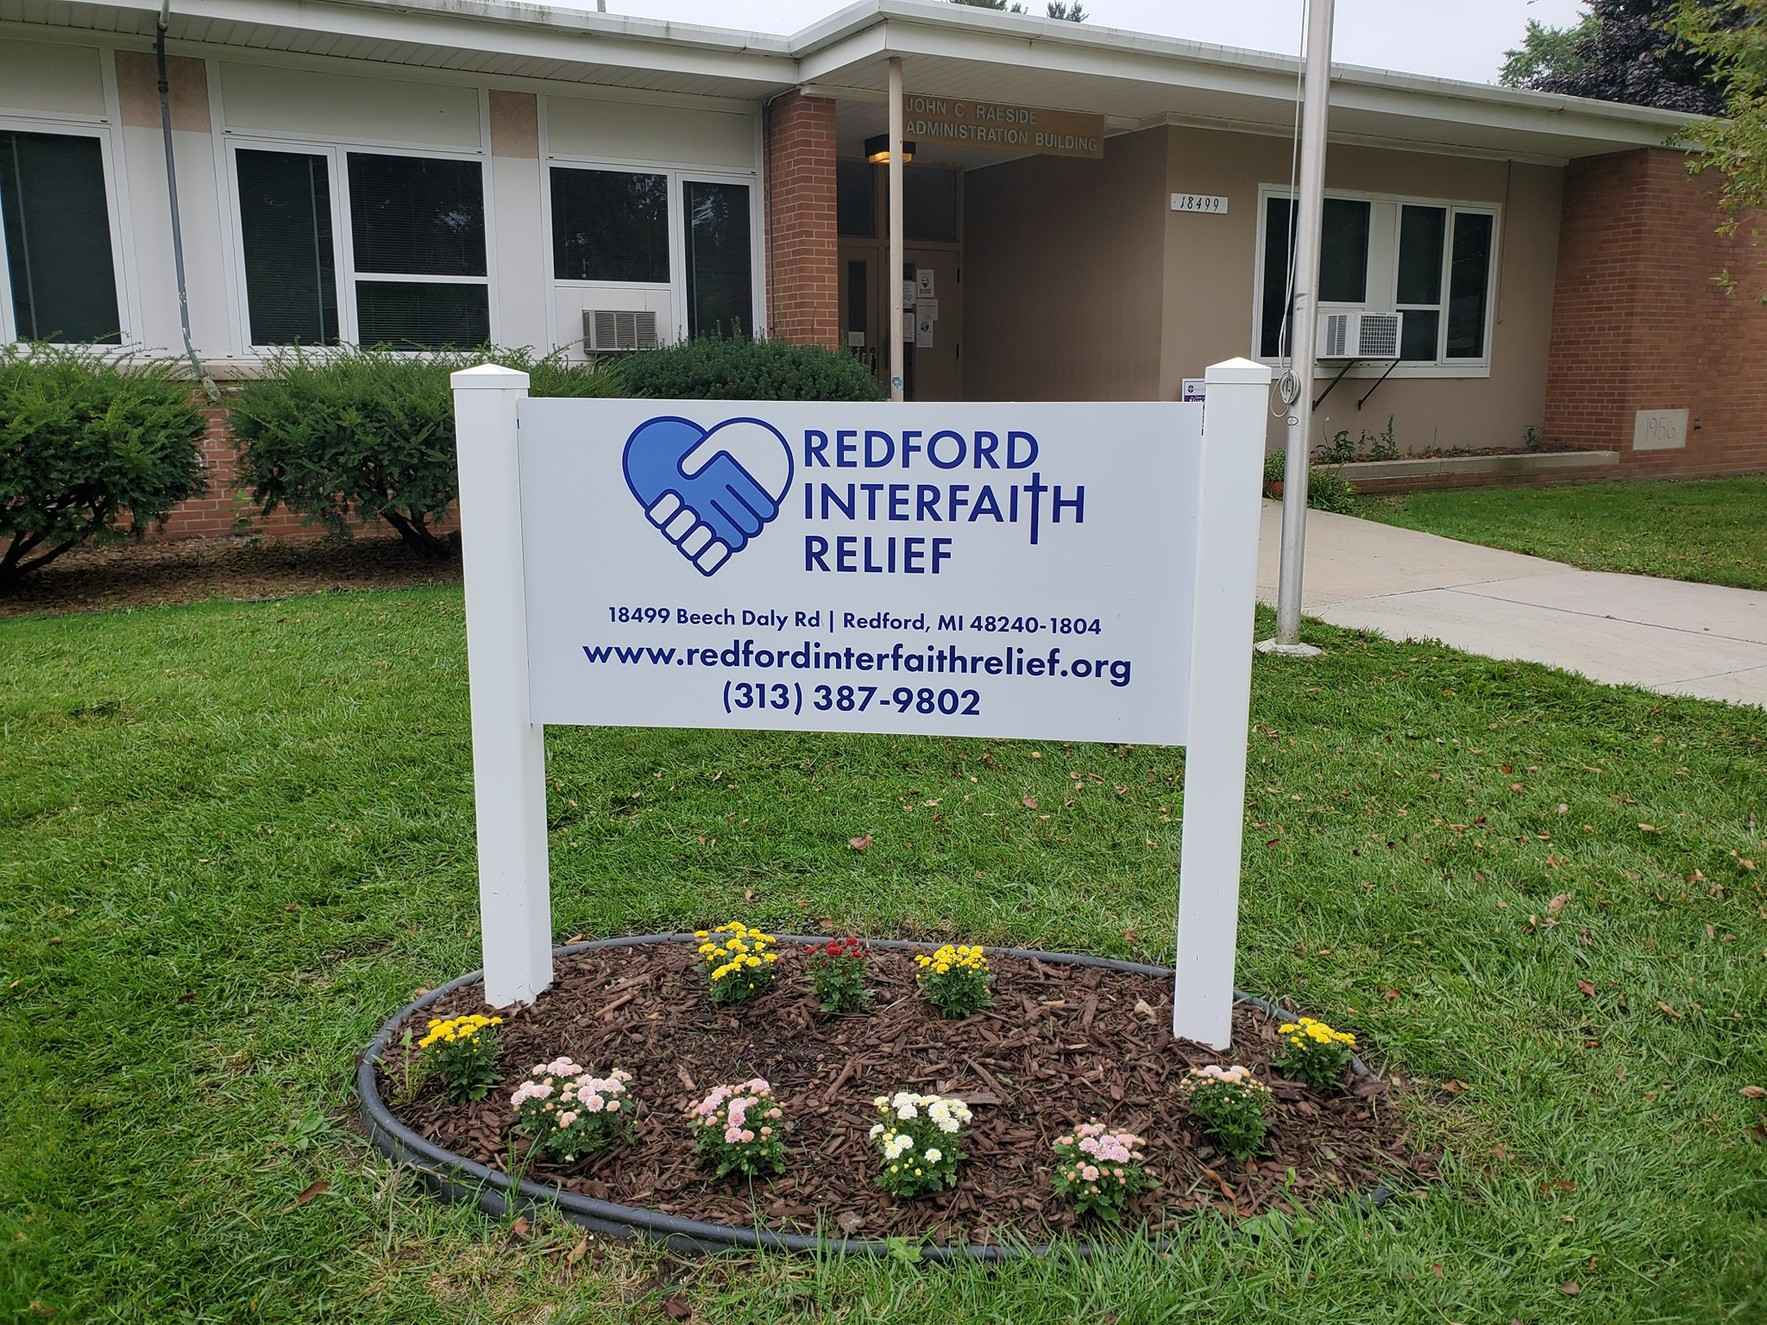 Redford is continuing to face hardships due to the pandemic, 2021 is a year of hope for many and a year of unknown for all. Please consider supporting RIR as we continue to serve those most affected by the pandemic. image